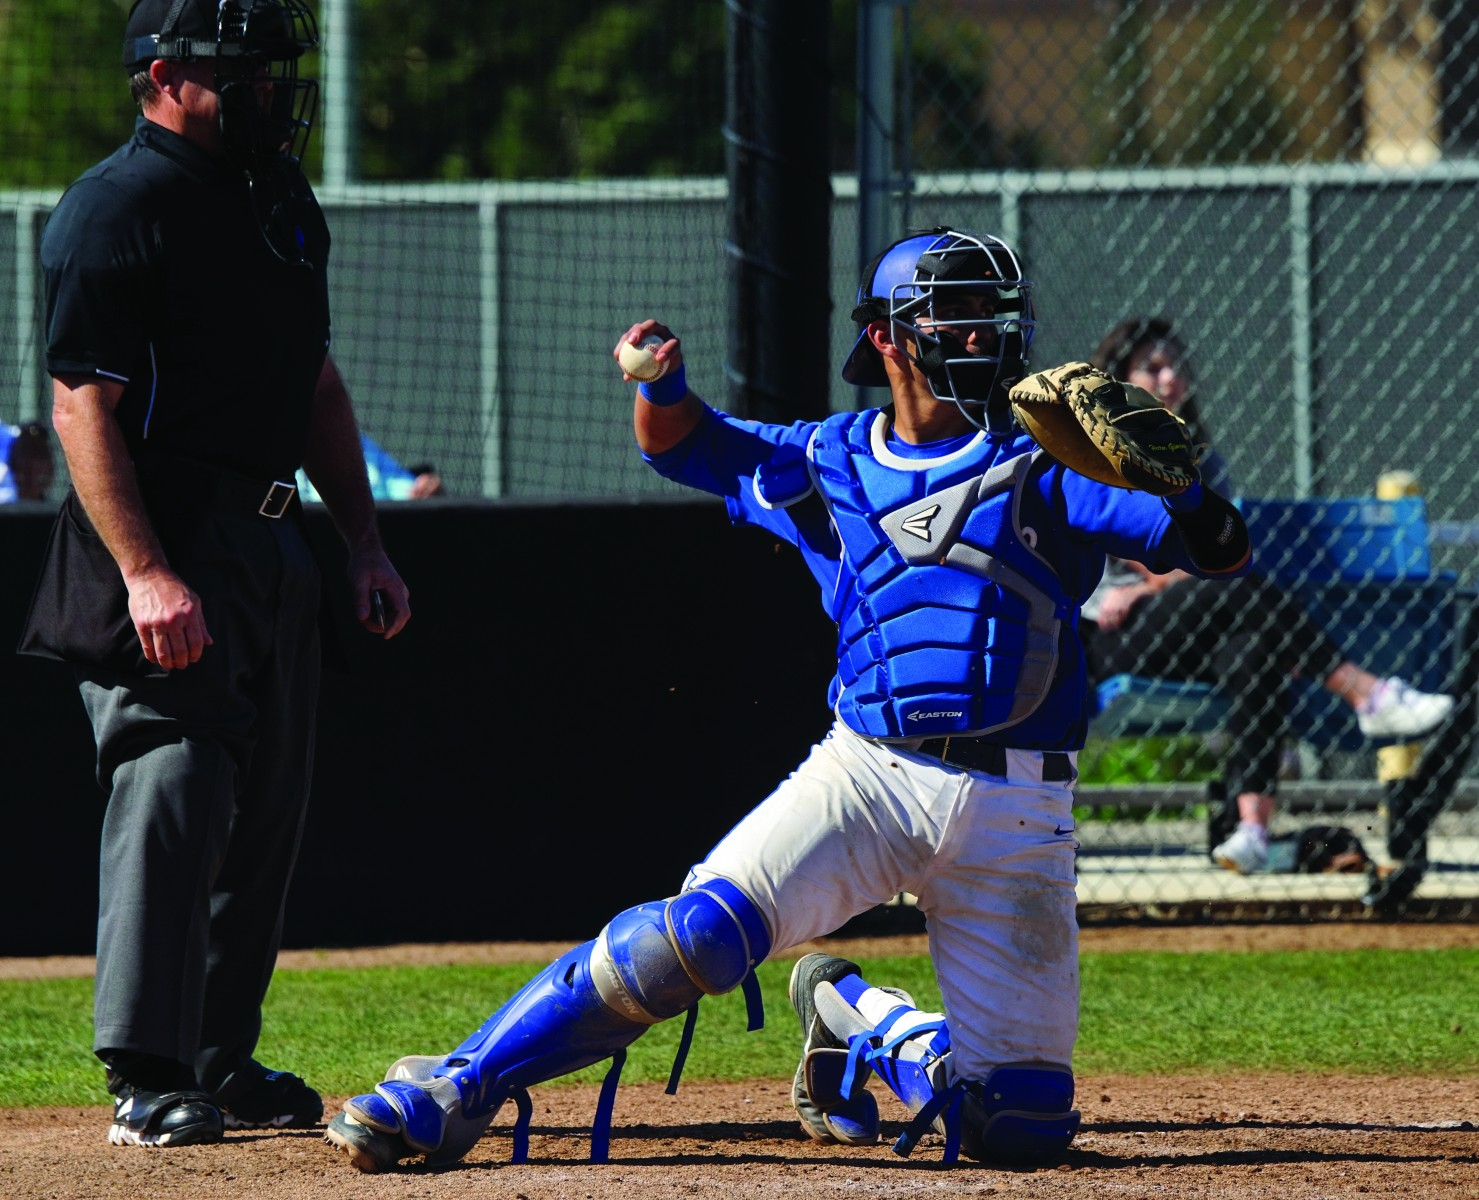 Isaias Torres put up solid numbers for the Cougars baseball team in 2018 when he started 29 games, but he made a difficult decision at the end of the season. Despite having one more year of playing eligibility, he decided it was time to step away from baseball to devote all of his efforts toward completing his bachelor's and preparing for medical school.